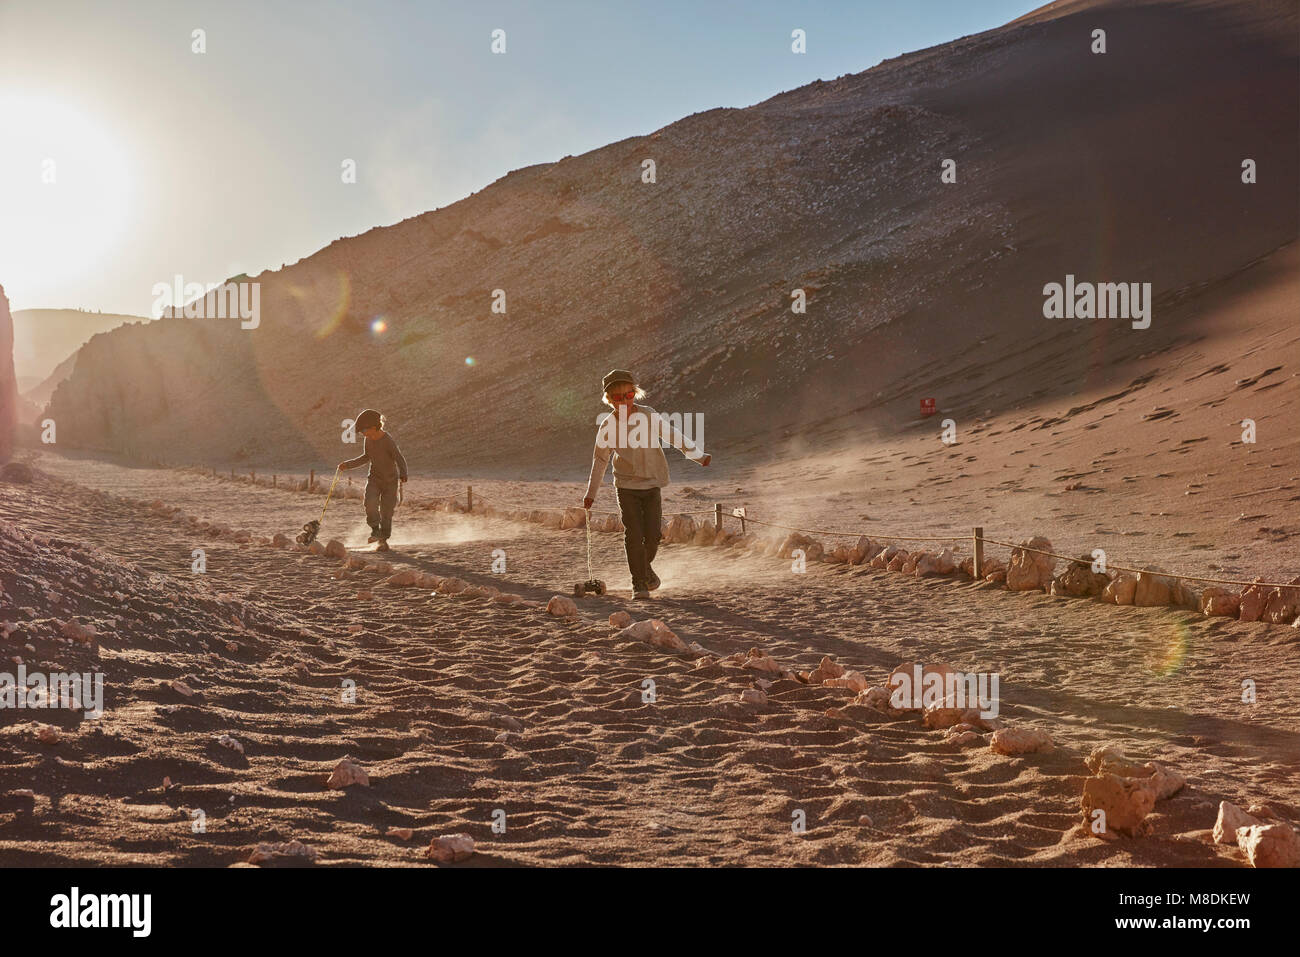 Boy and his brother pulling toy trucks along desert path, Atacama, Chile - Stock Image